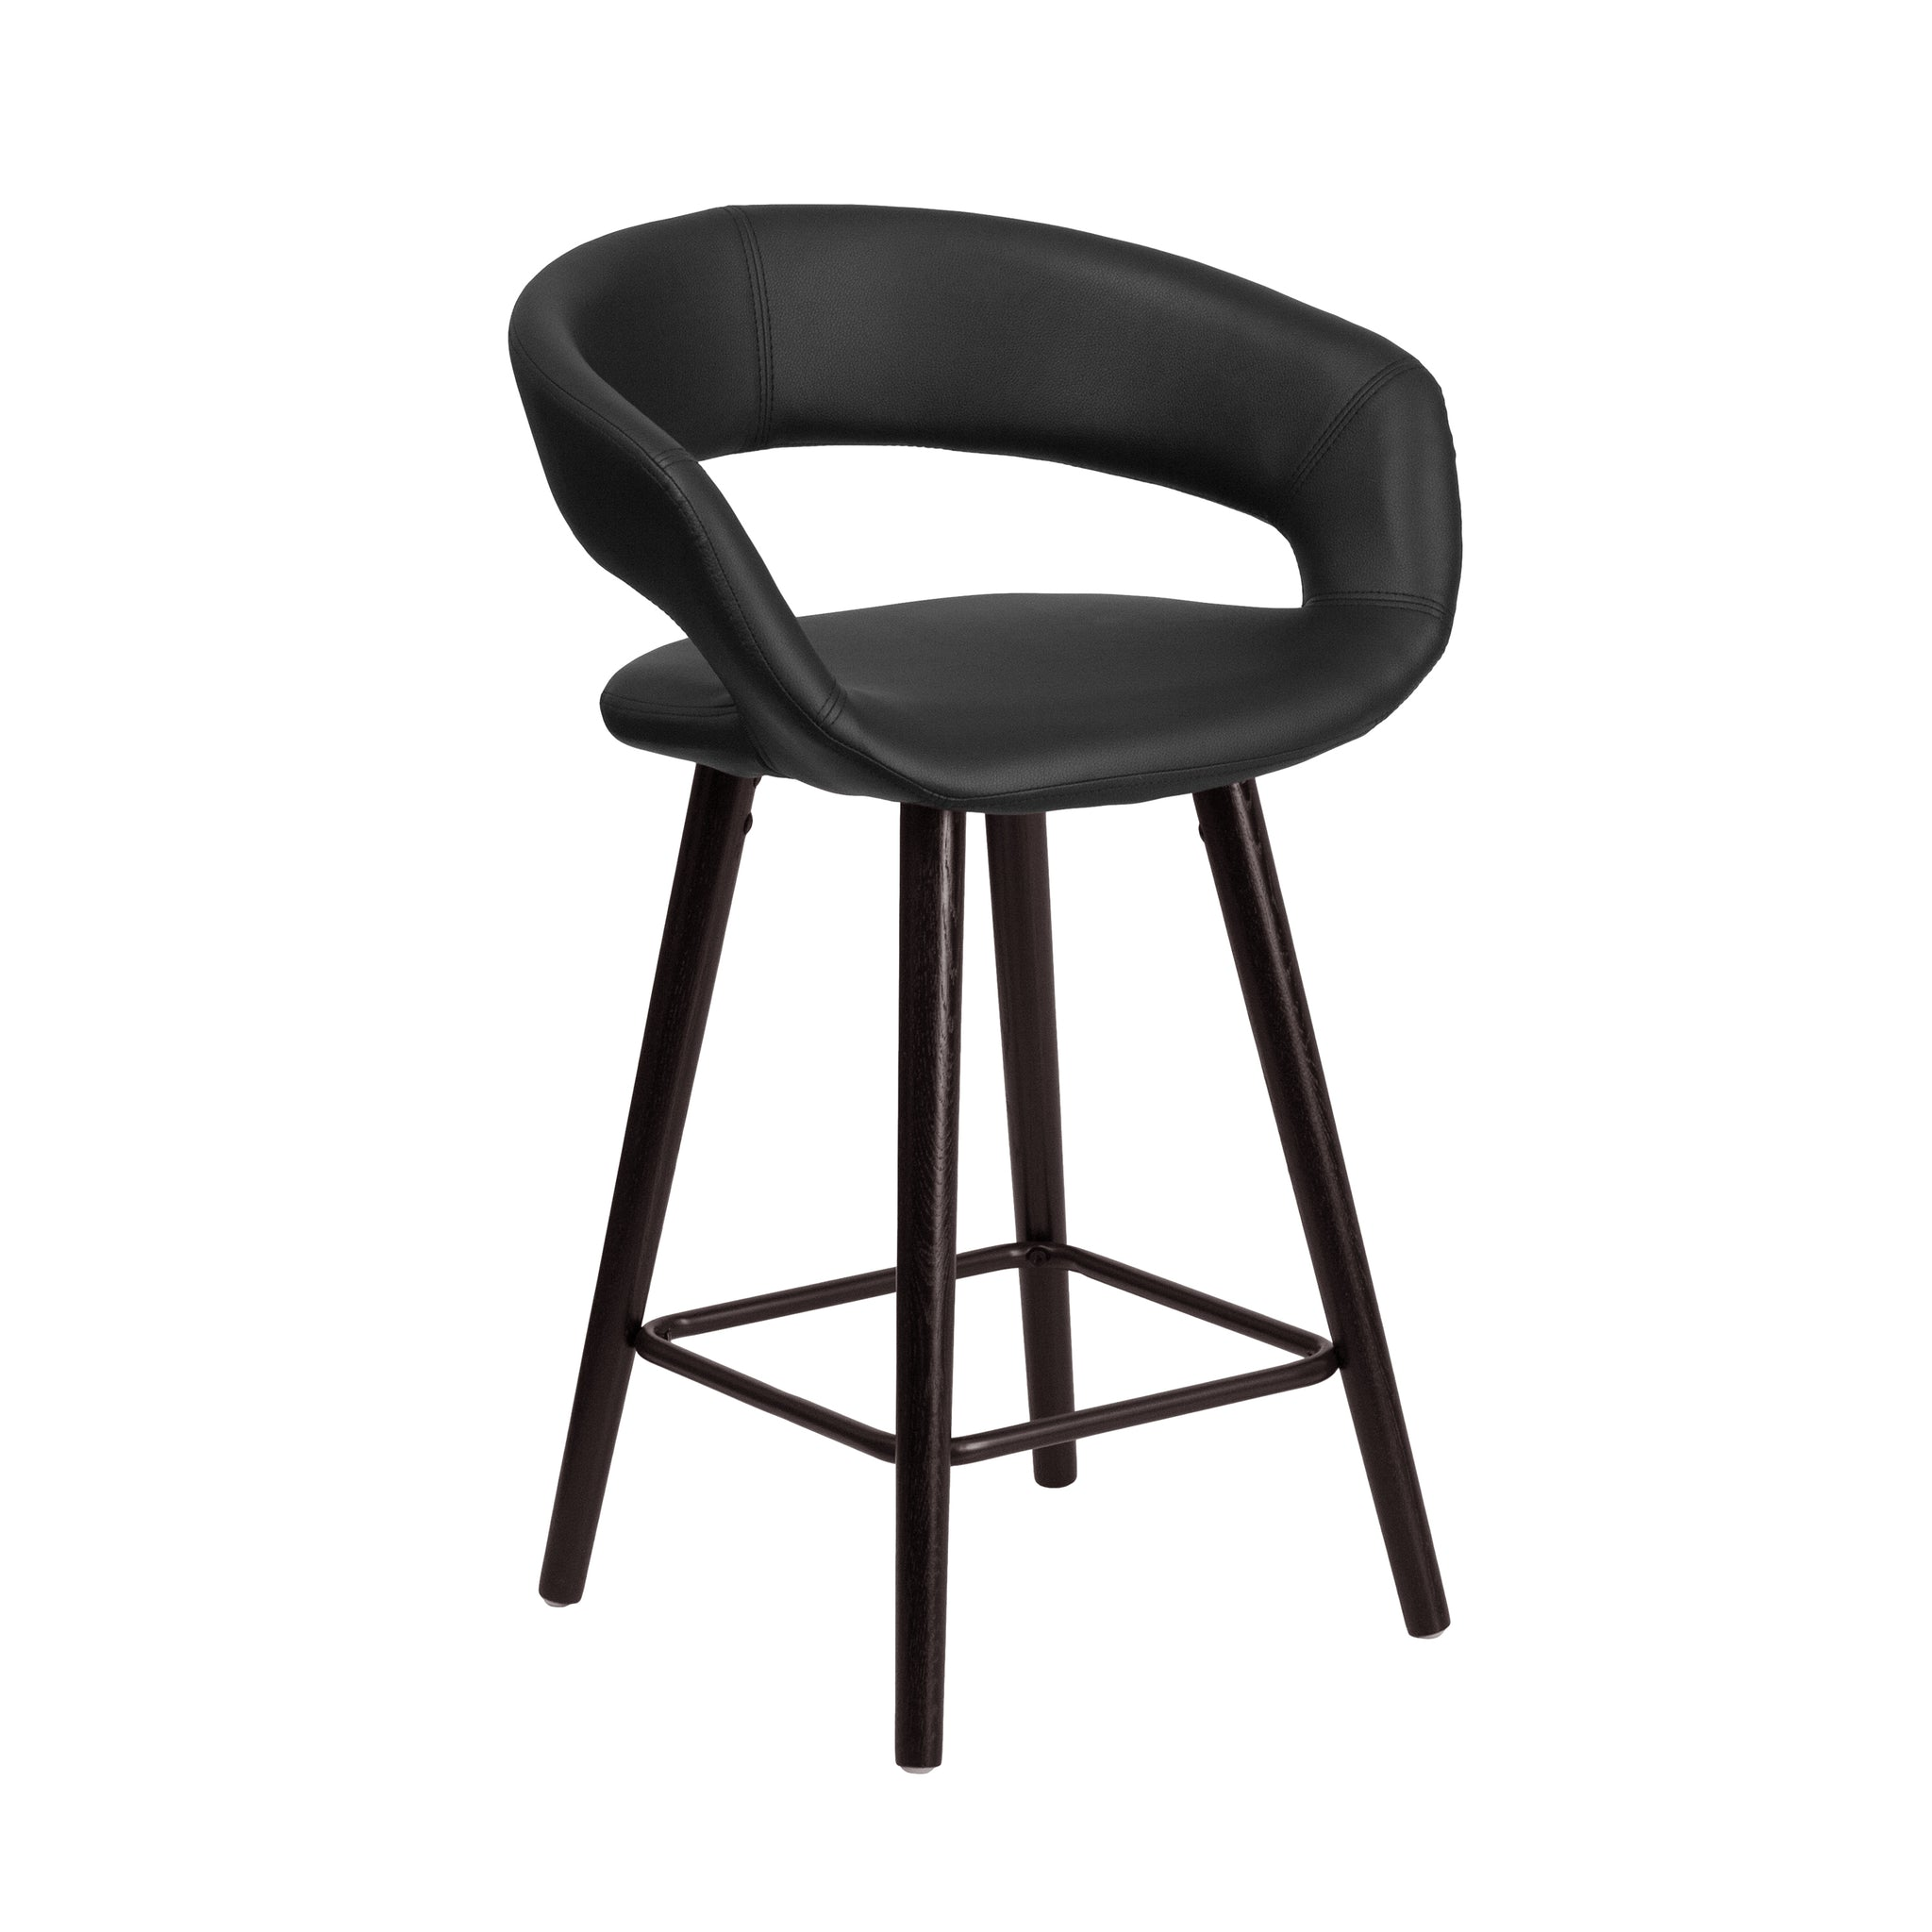 Brynn Series 24'' High Contemporary Vinyl Counter Height Stool with Cappuccino Wood Frame: Black